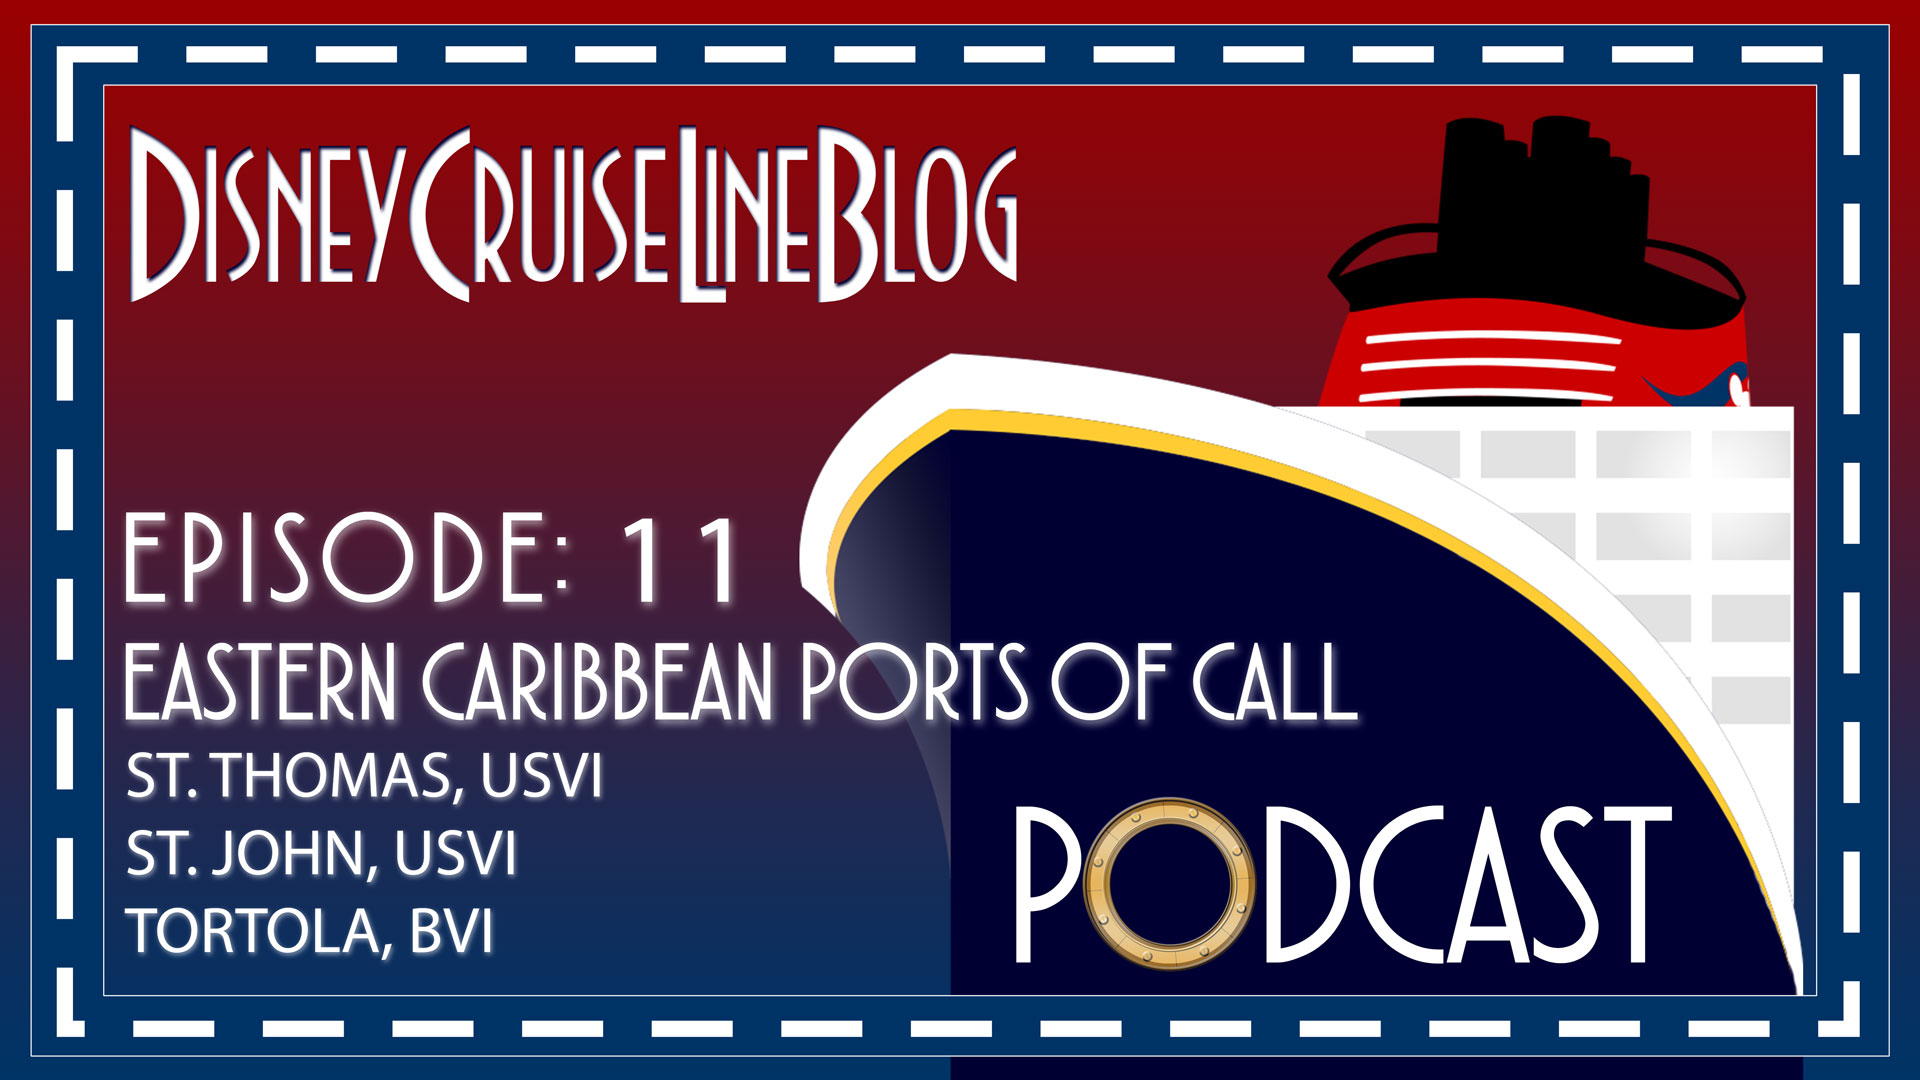 DCL Blog Podcast Episode 11 Eastern Caribbean Ports